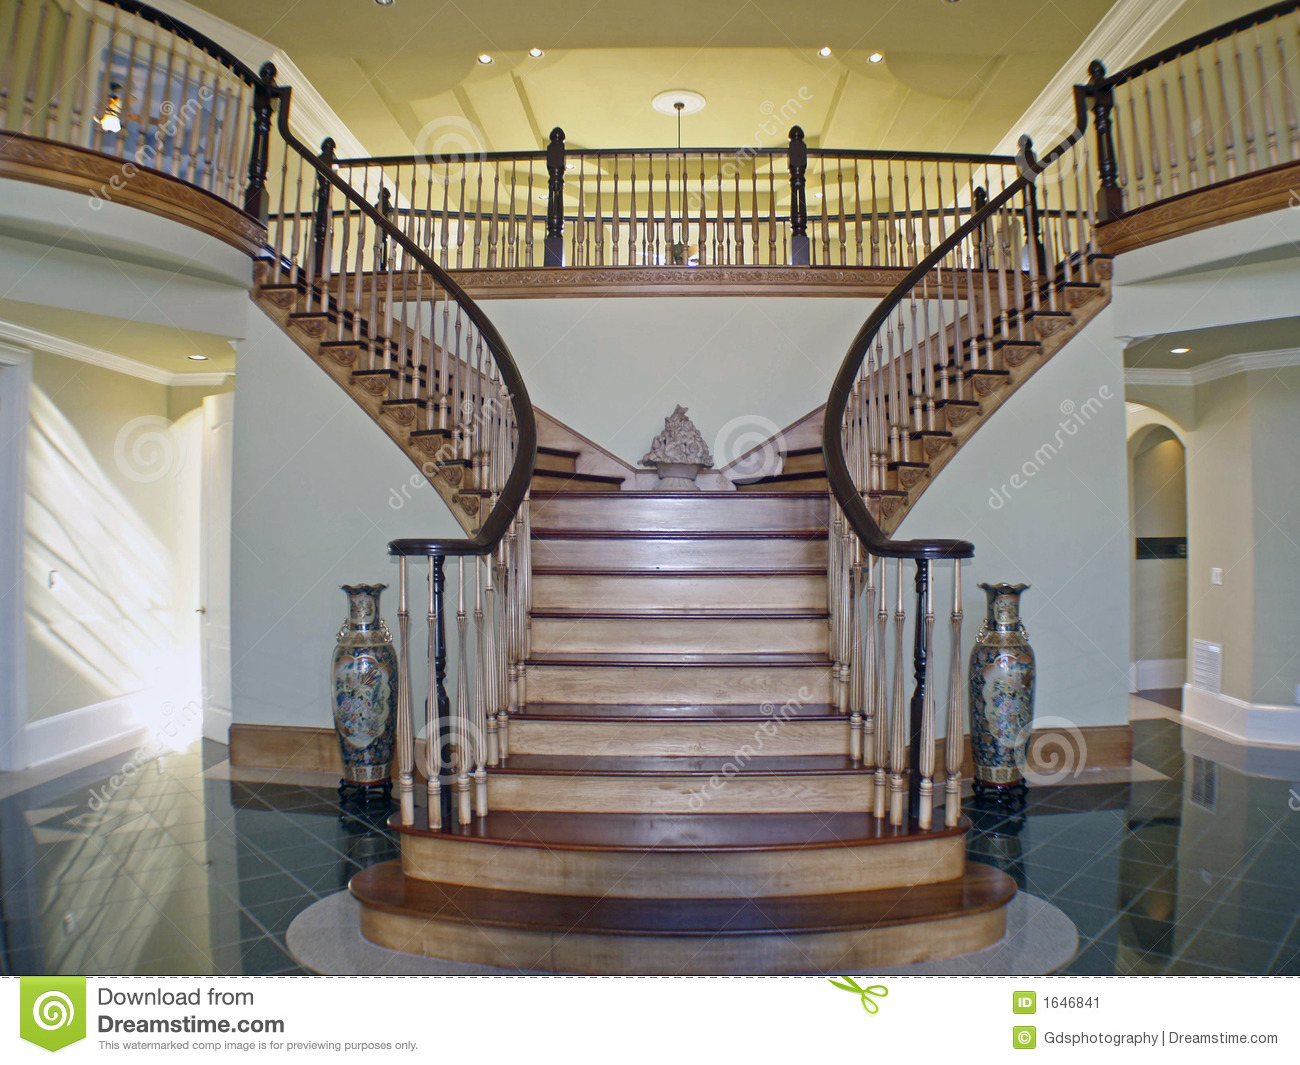 Stair Case Foyer Stock Image Image 1646841